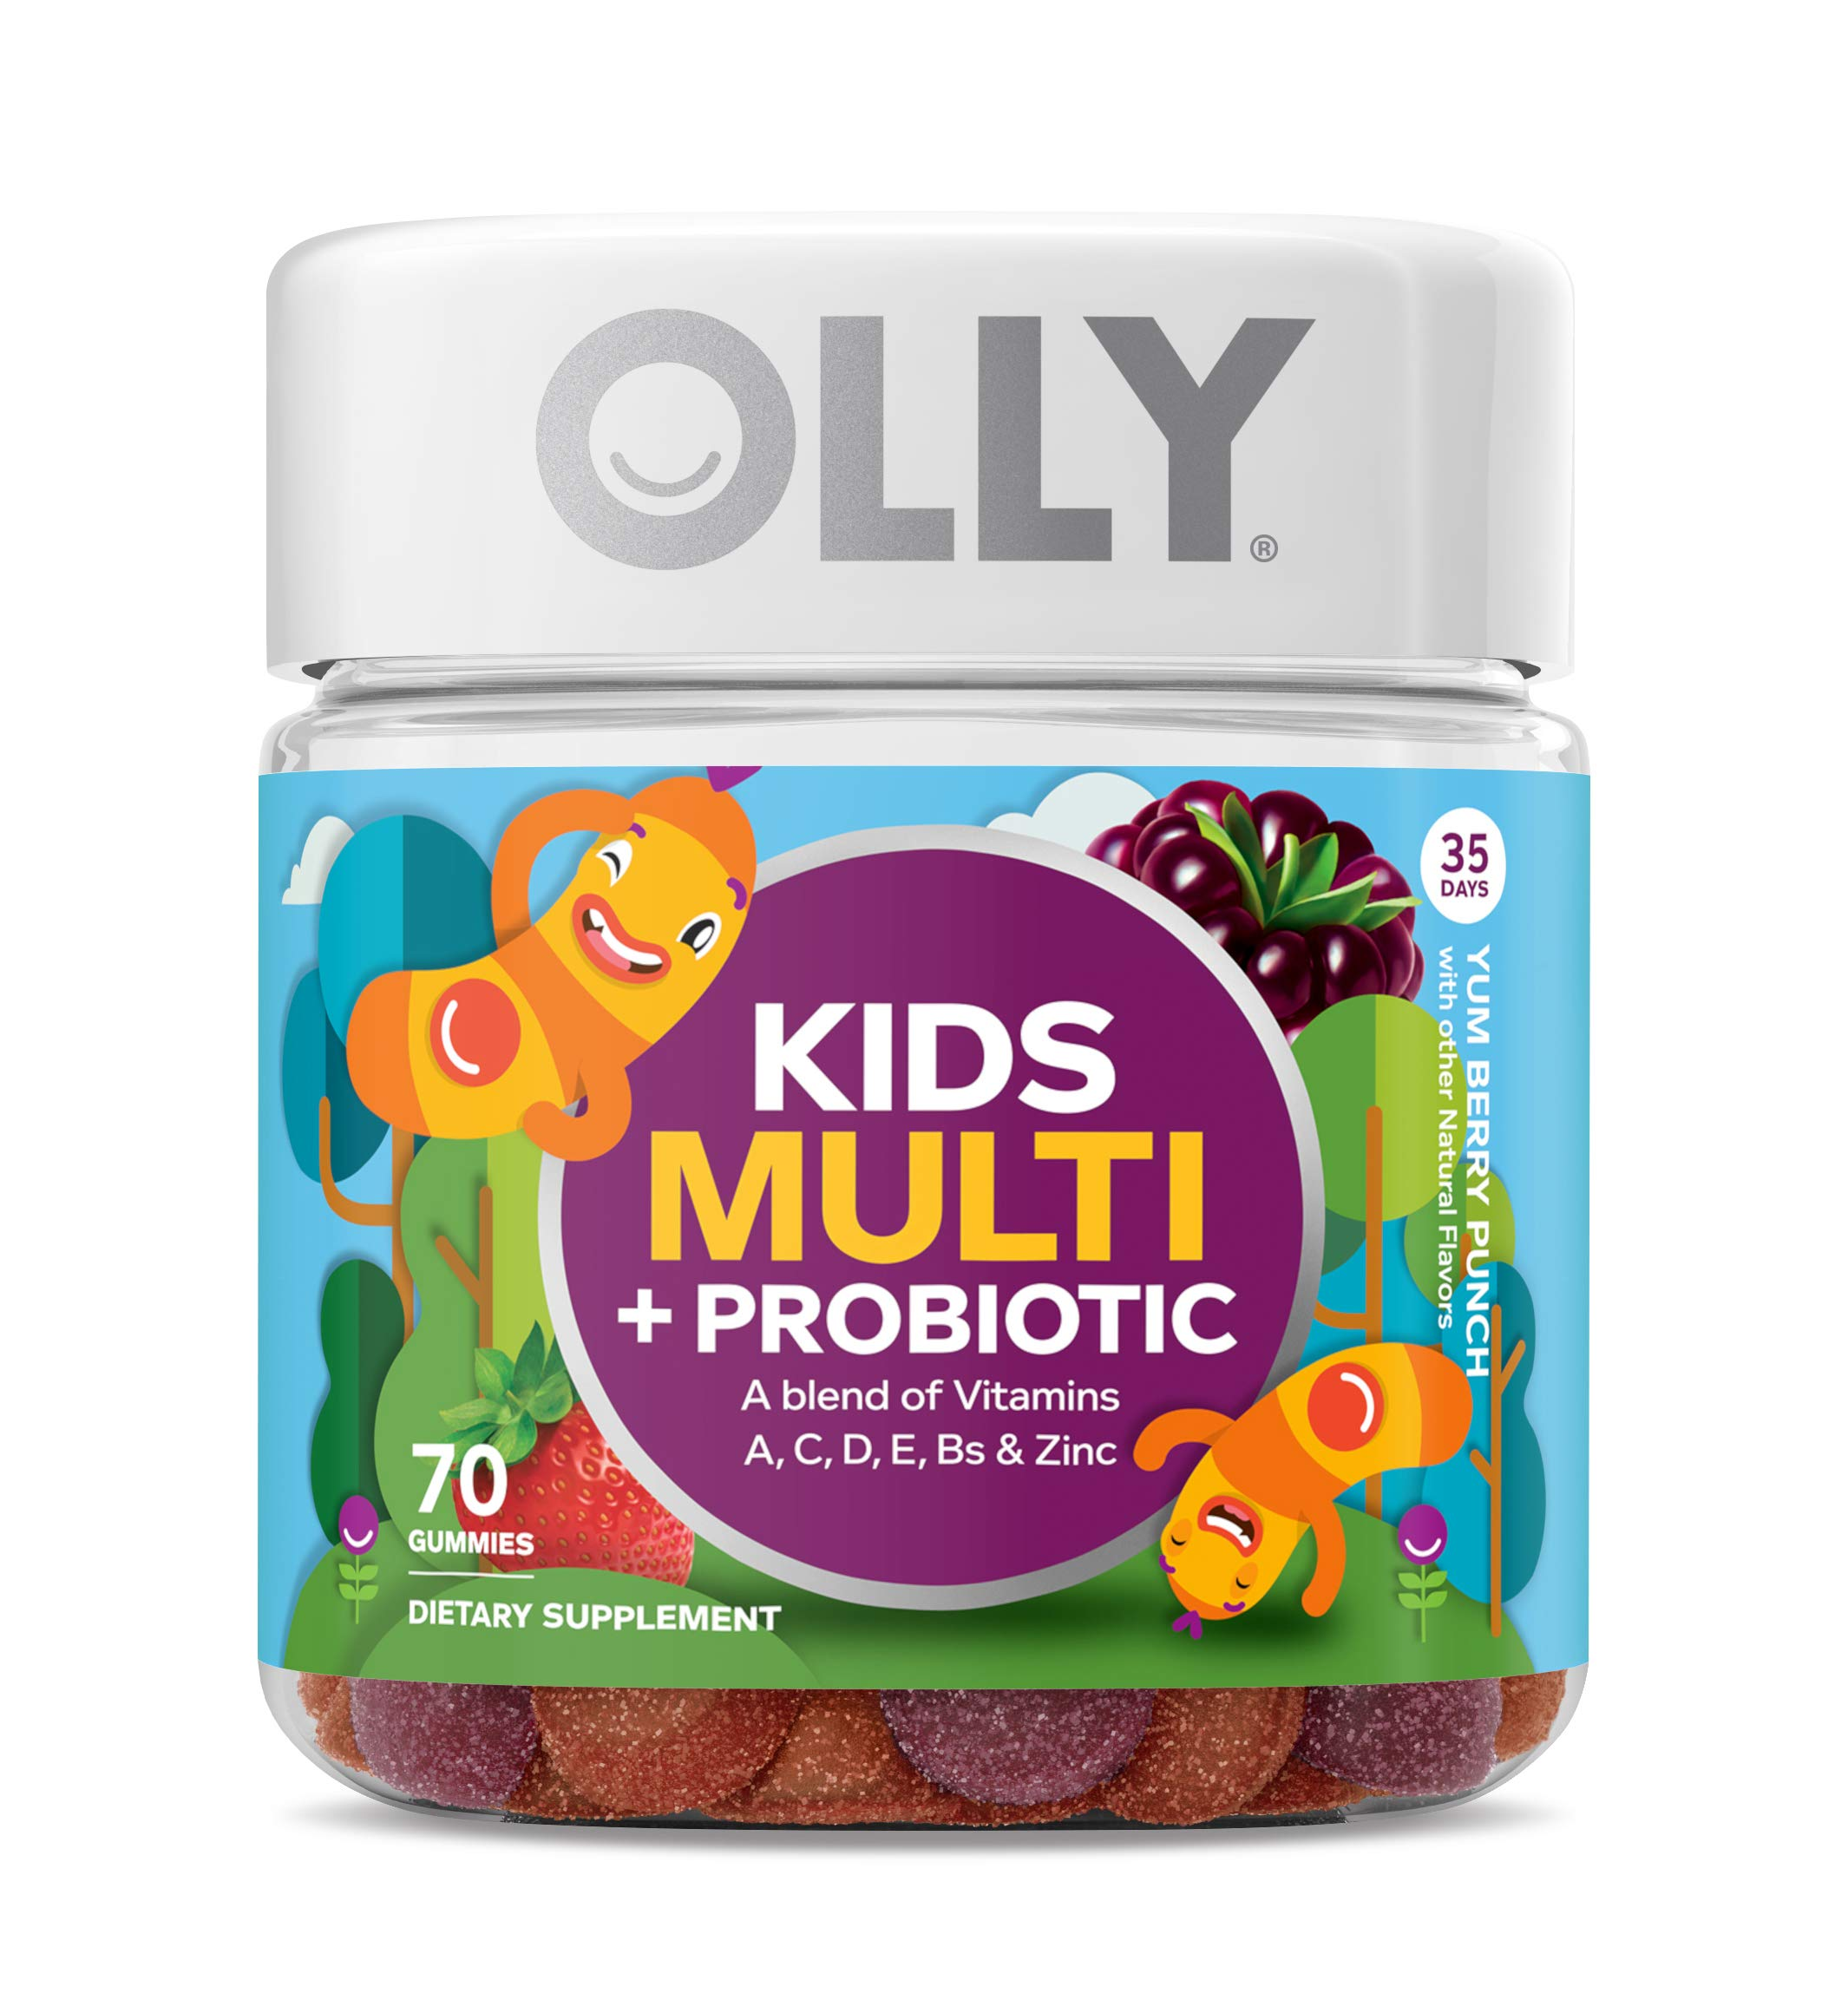 OLLY Kids Multi + Probiotic Gummy Multivitamin, 35 Day Supply (70 Count), Yum Berry Punch, Vitamins A, C, D, E, B, Zinc, Probiotics, Chewable Supplement by Olly